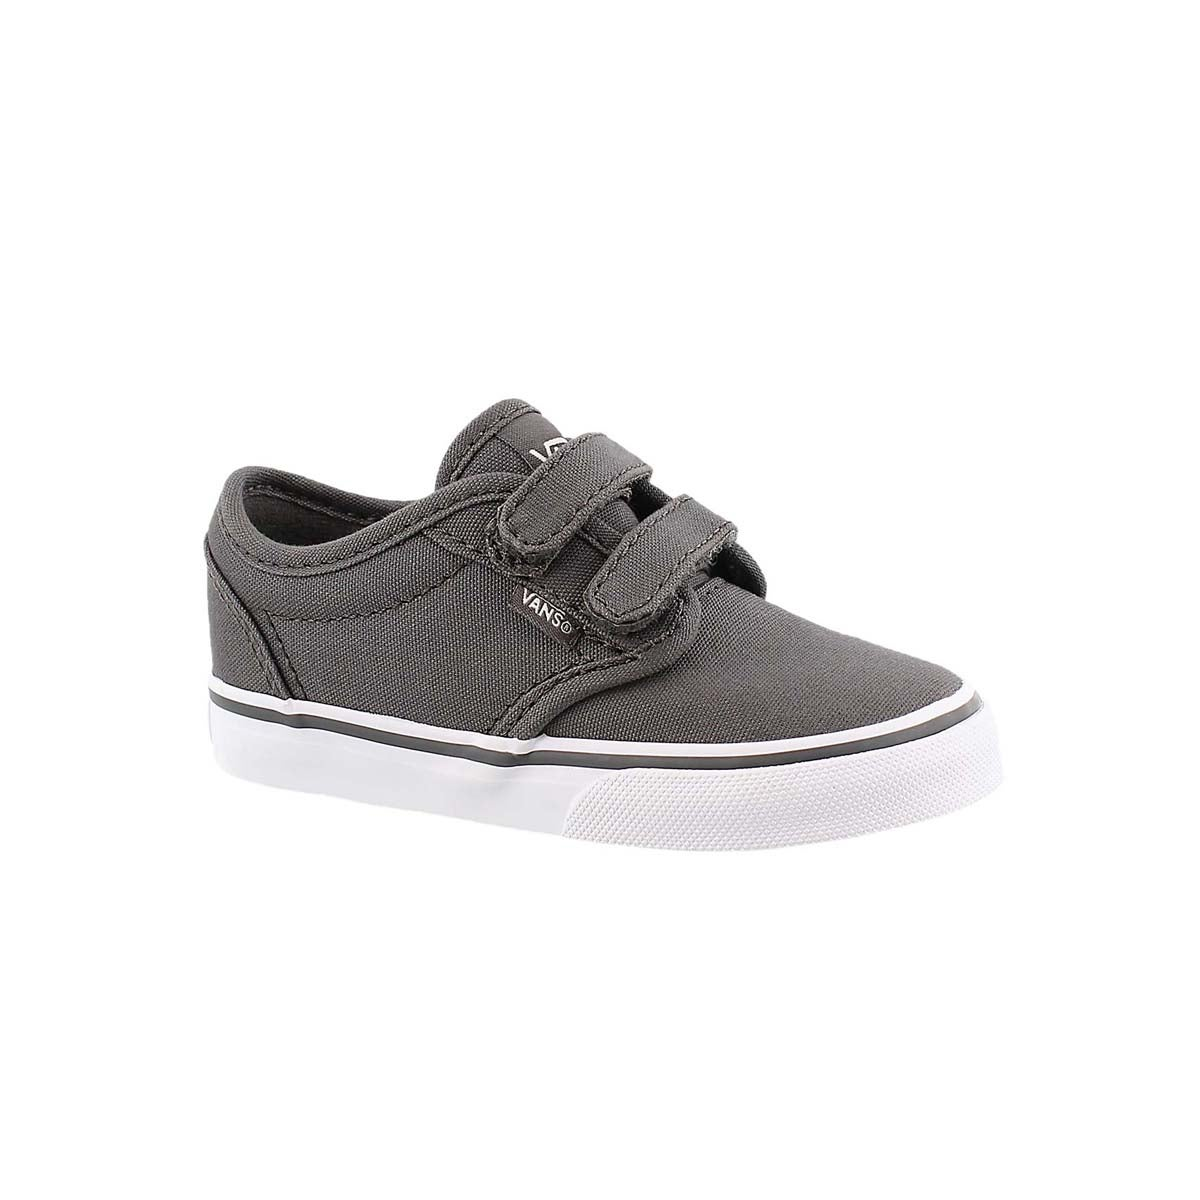 Infants' ATWOOD pewter canvas sneakers